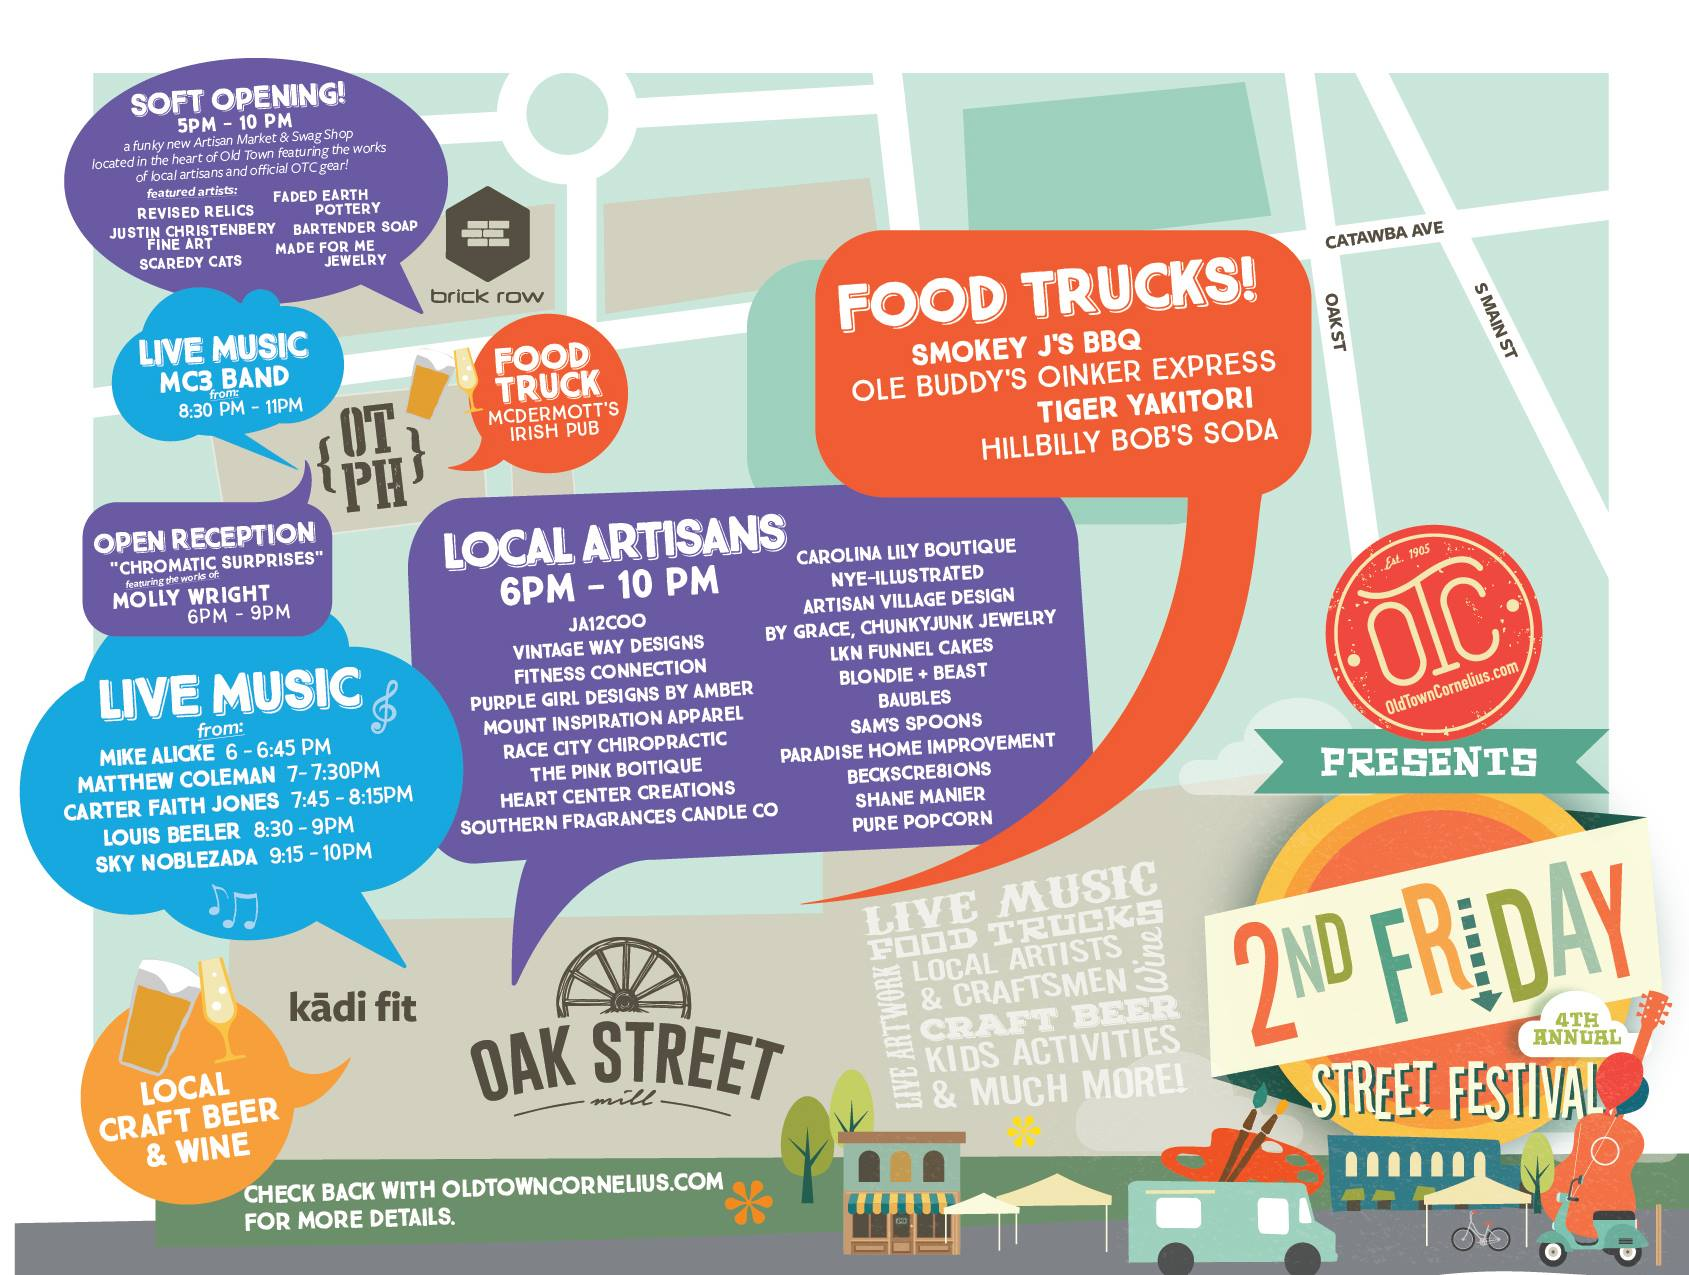 OTC 2nd Friday Street Festival – May 12th Event Details